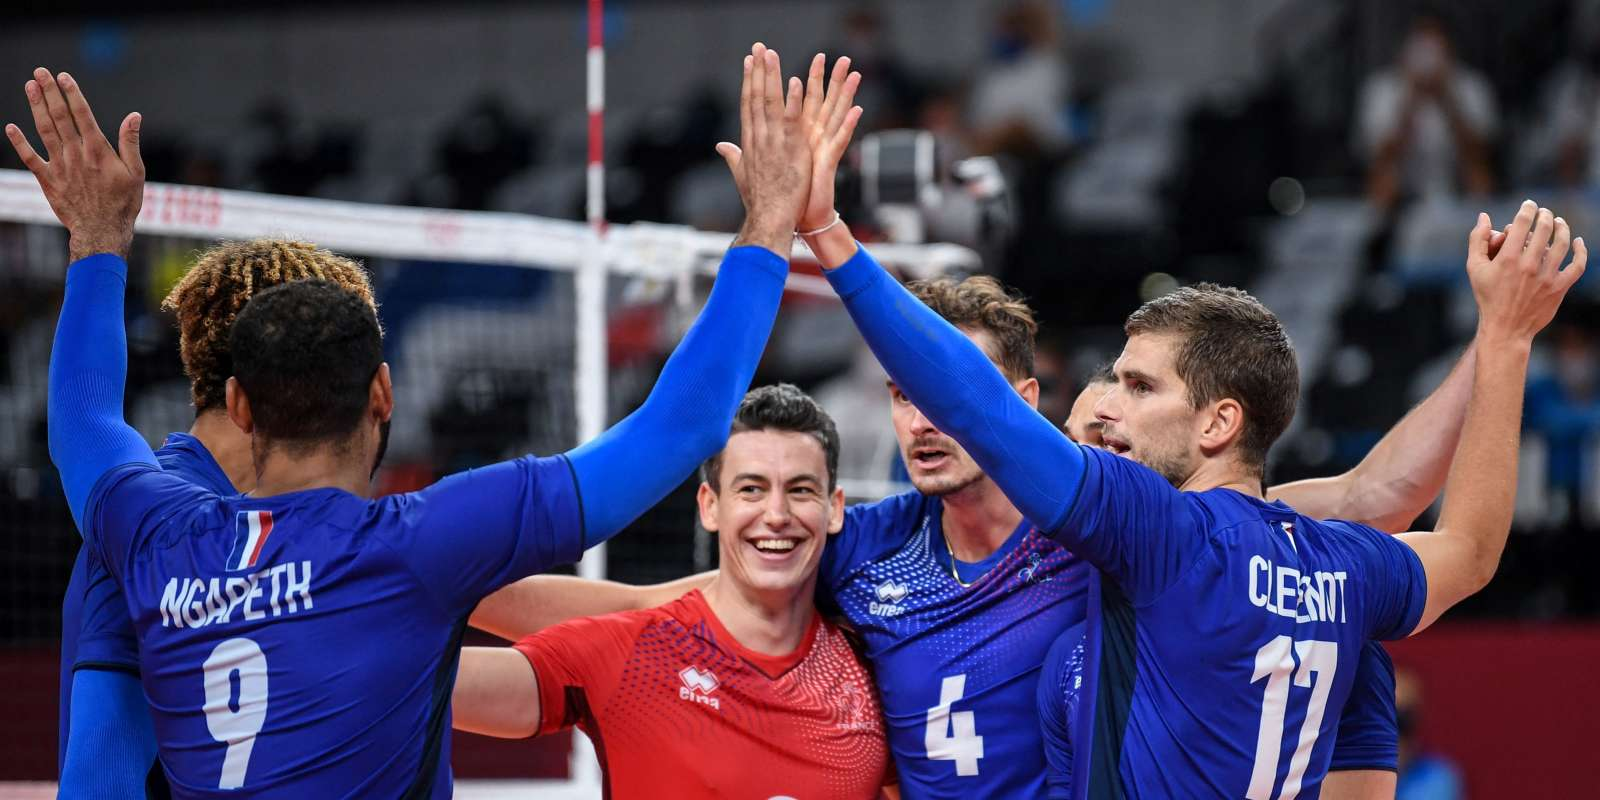 France's players react after a point in the men's semi-final volleyball match between France and Argentina during the Tokyo 2020 Olympic Games at Ariake Arena in Tokyo on August 5, 2021. (Photo by Yuri Cortez / AFP)